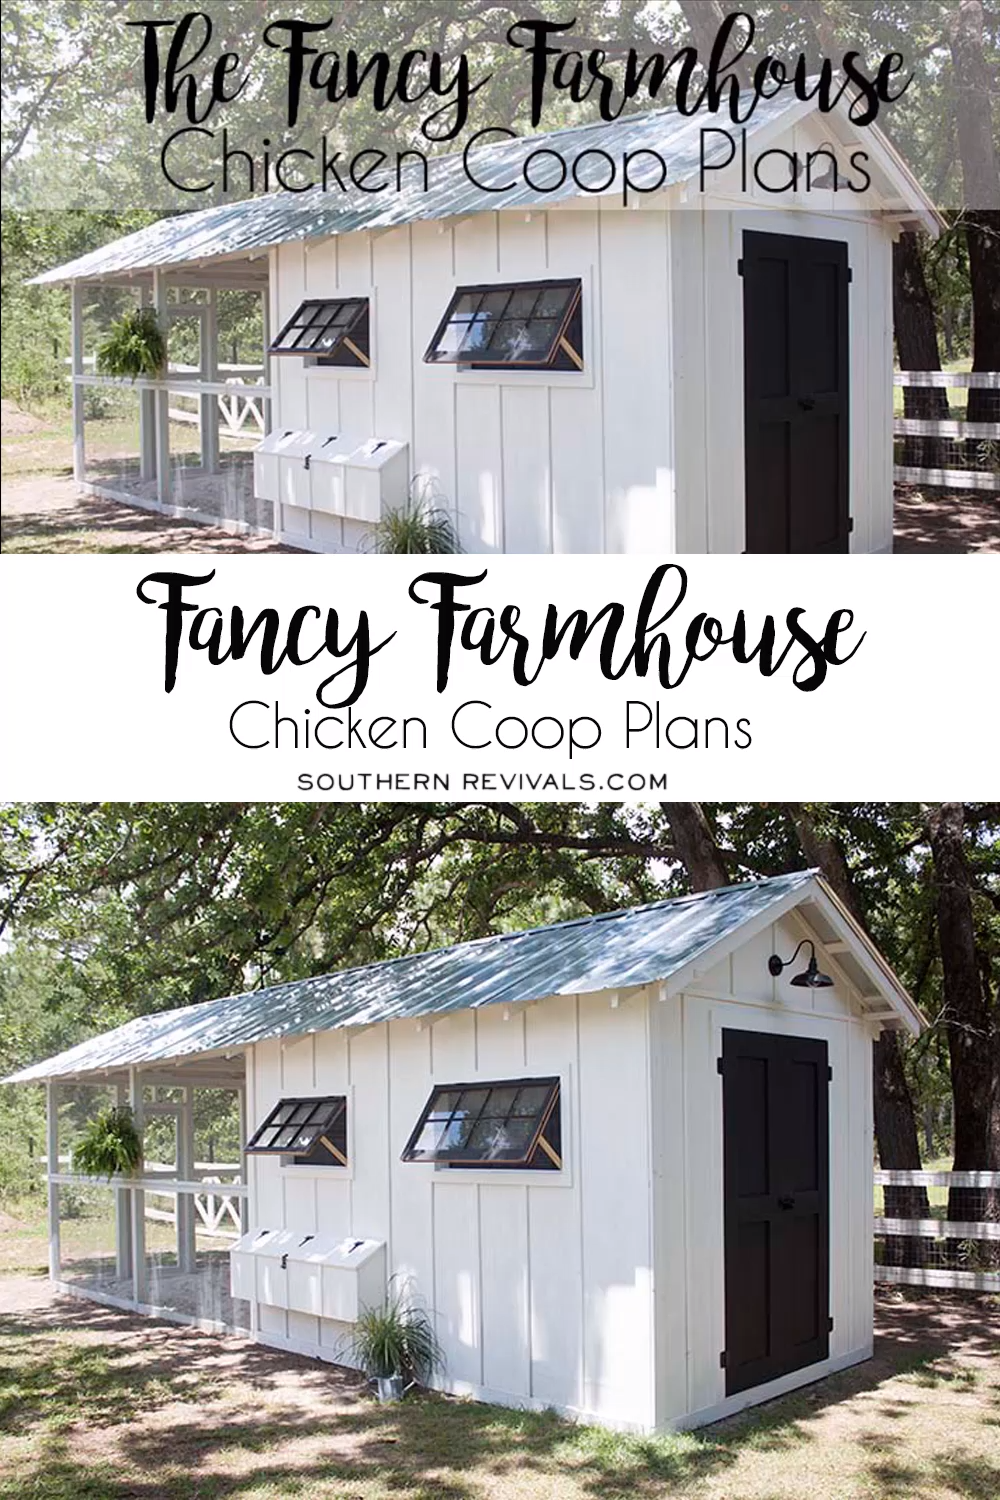 Photo of Fancy Farmhouse Chicken Coop Plans